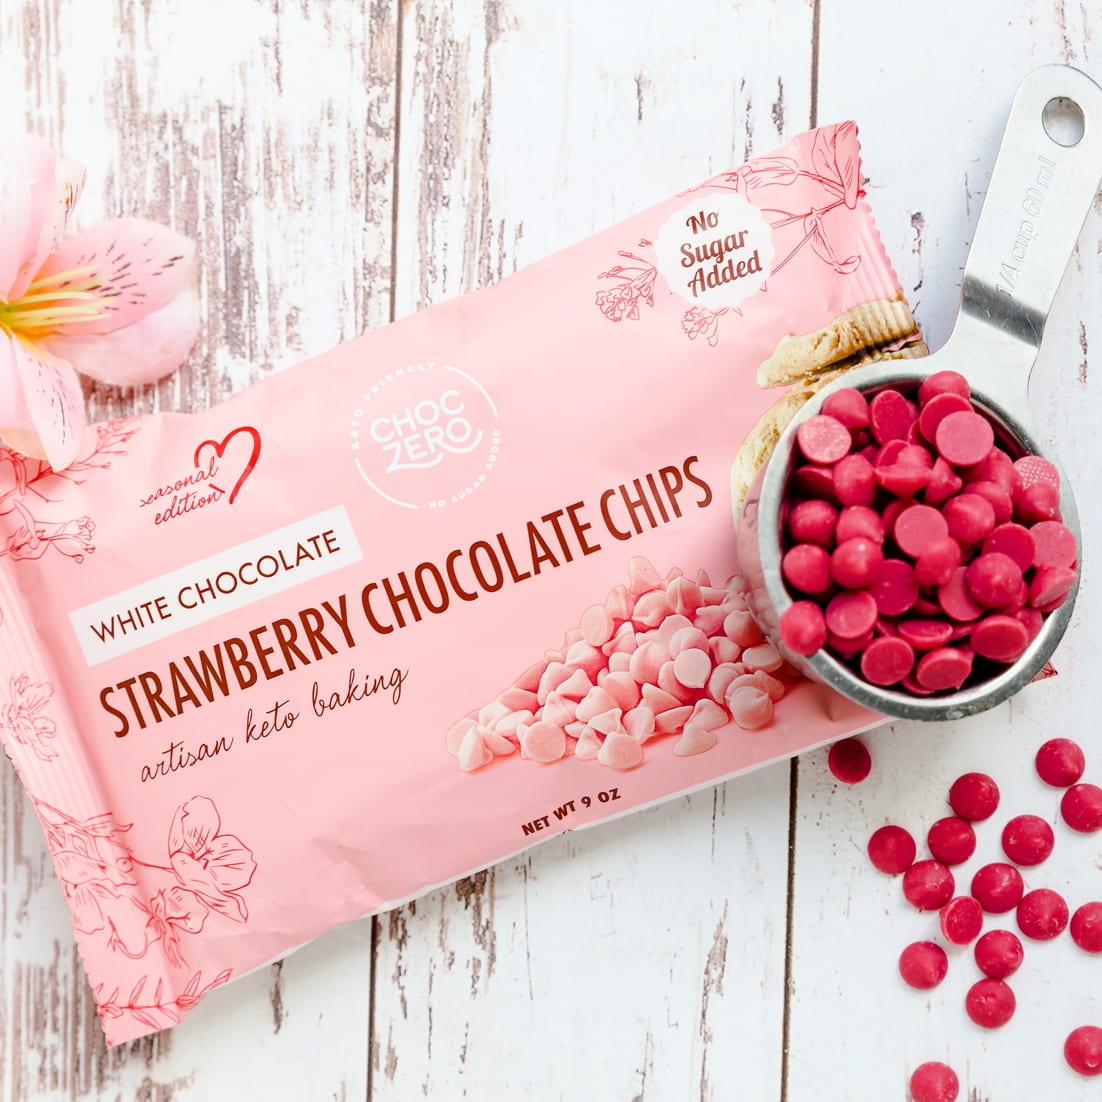 Packaging of Choczero strawberry white chocolate chips next to keto strawberry chocolate chip inside a measuring cup